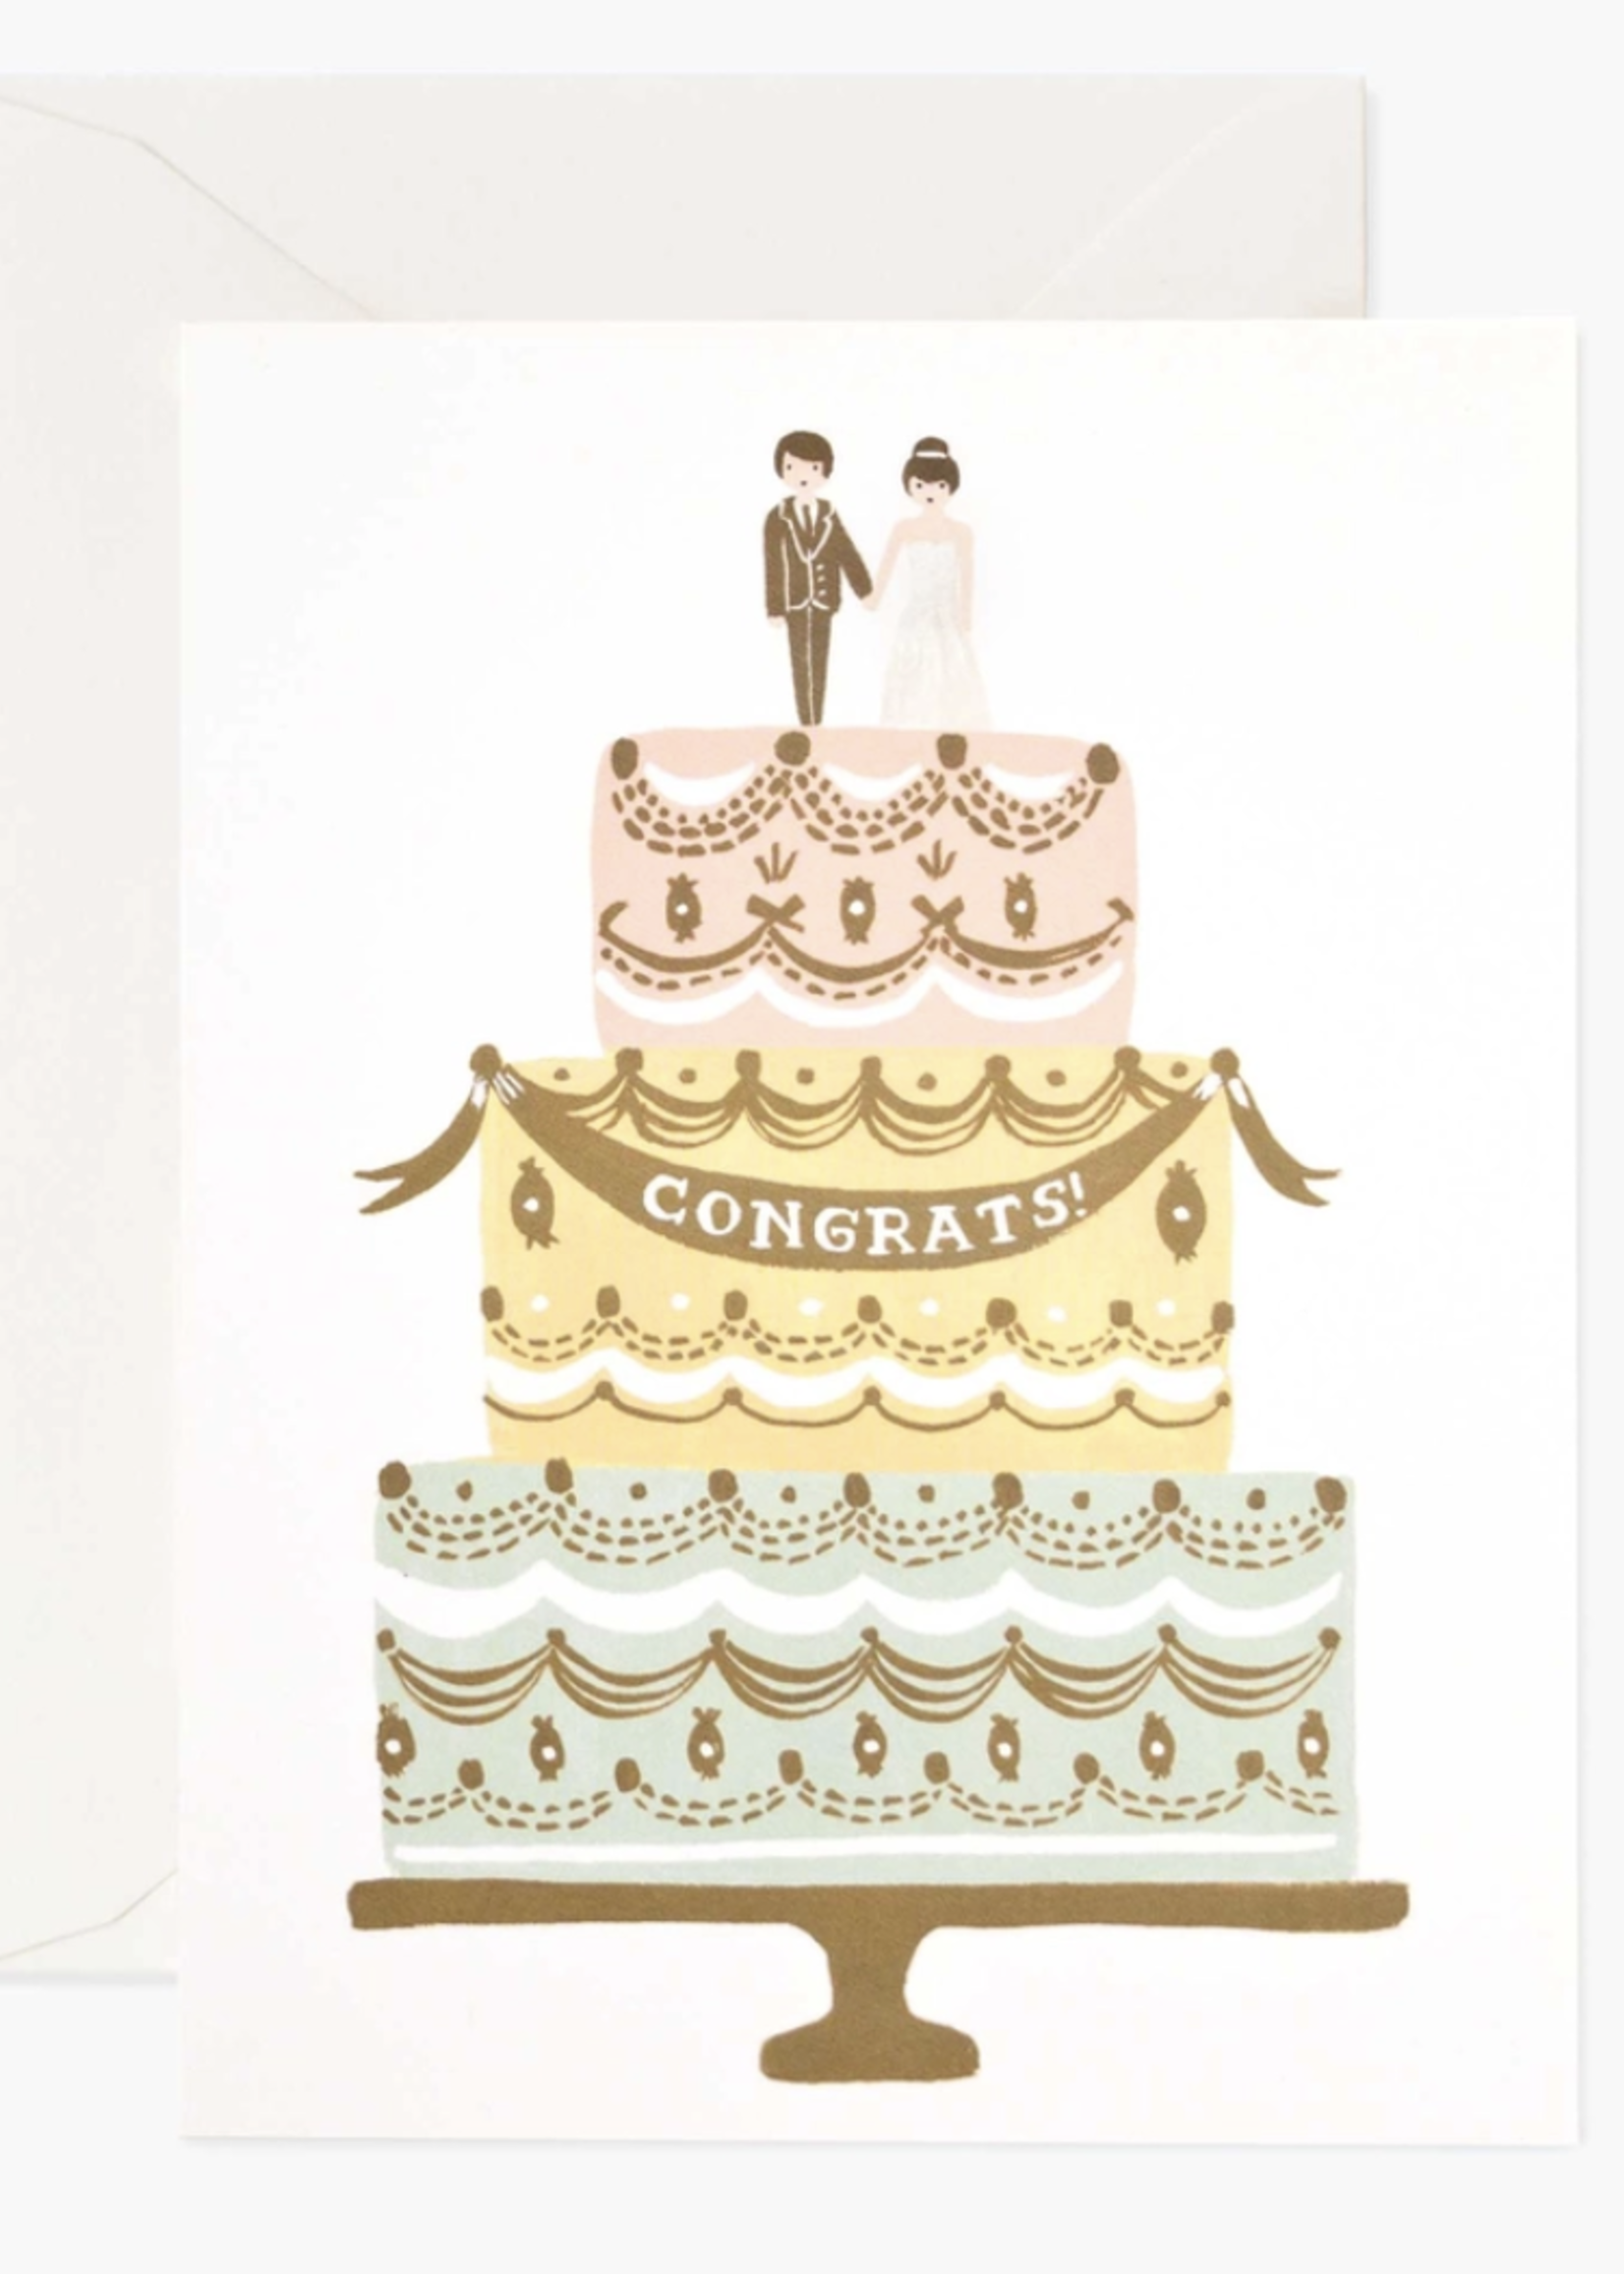 rifle paper co. rifle paper congrats wedding cake card